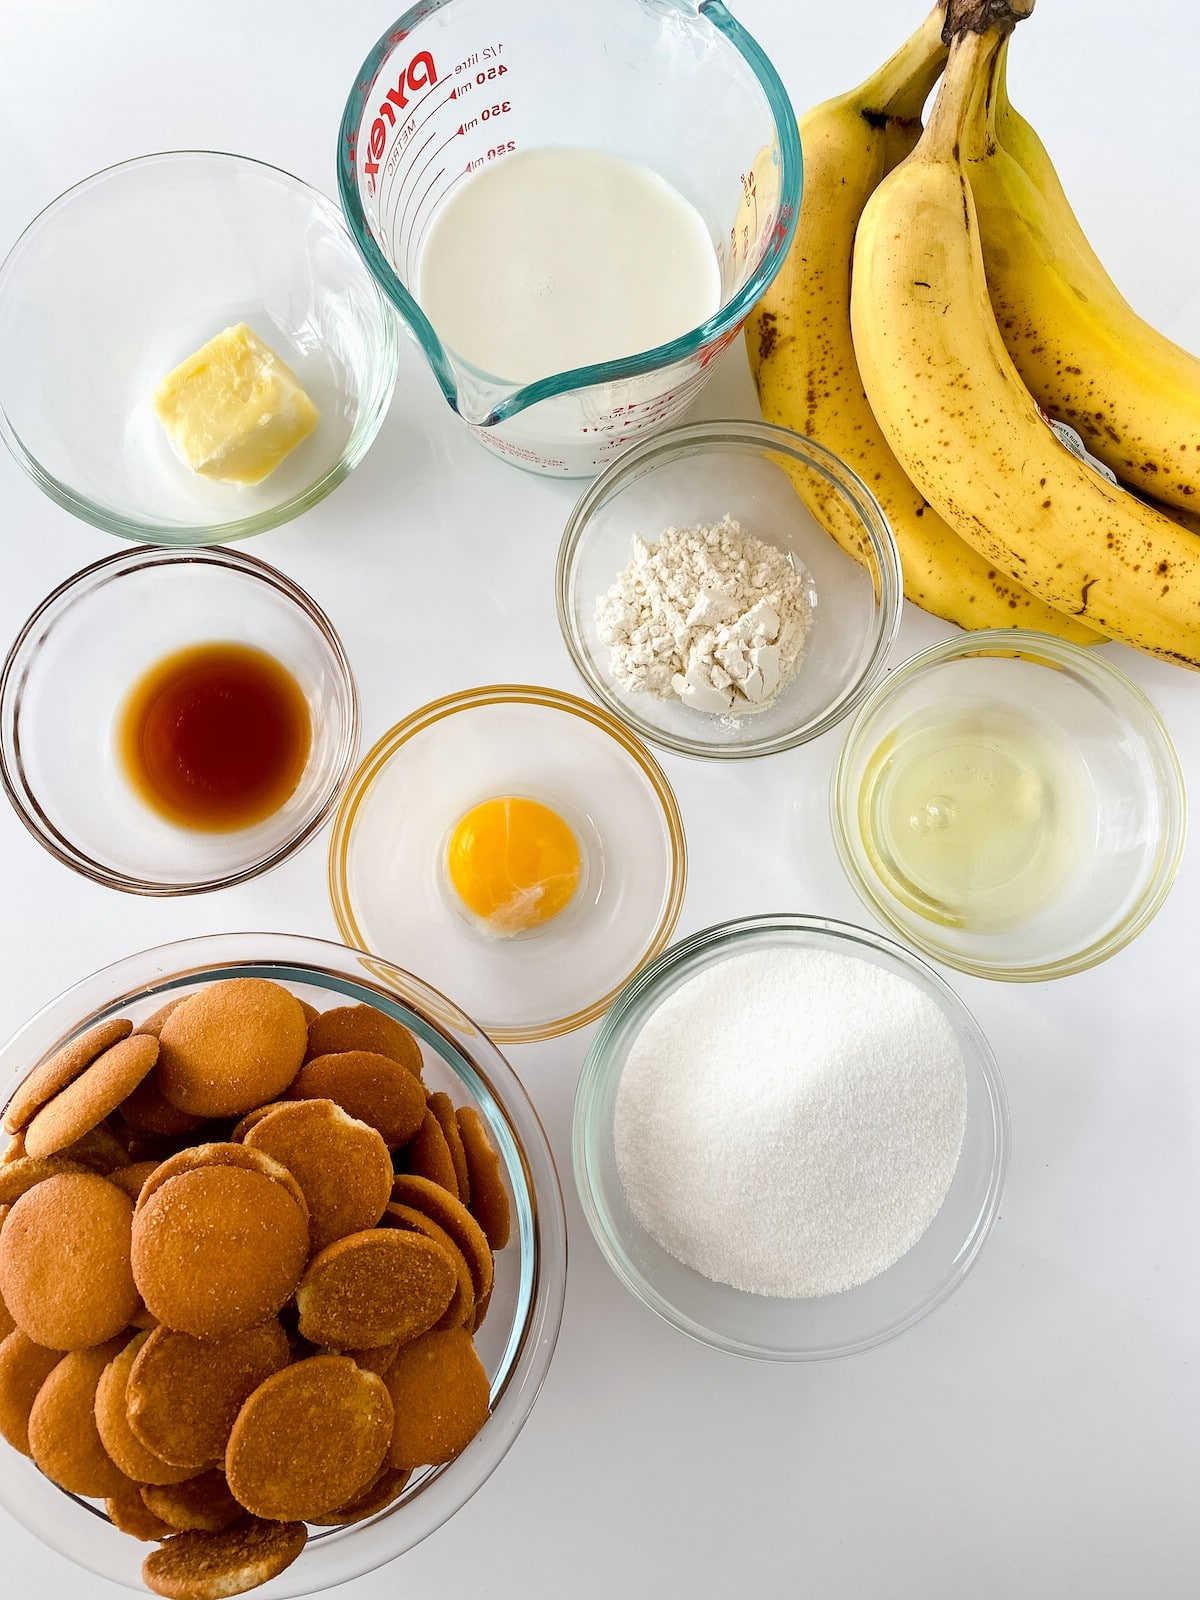 Ingredients for banana pudding in glass bowls on white table